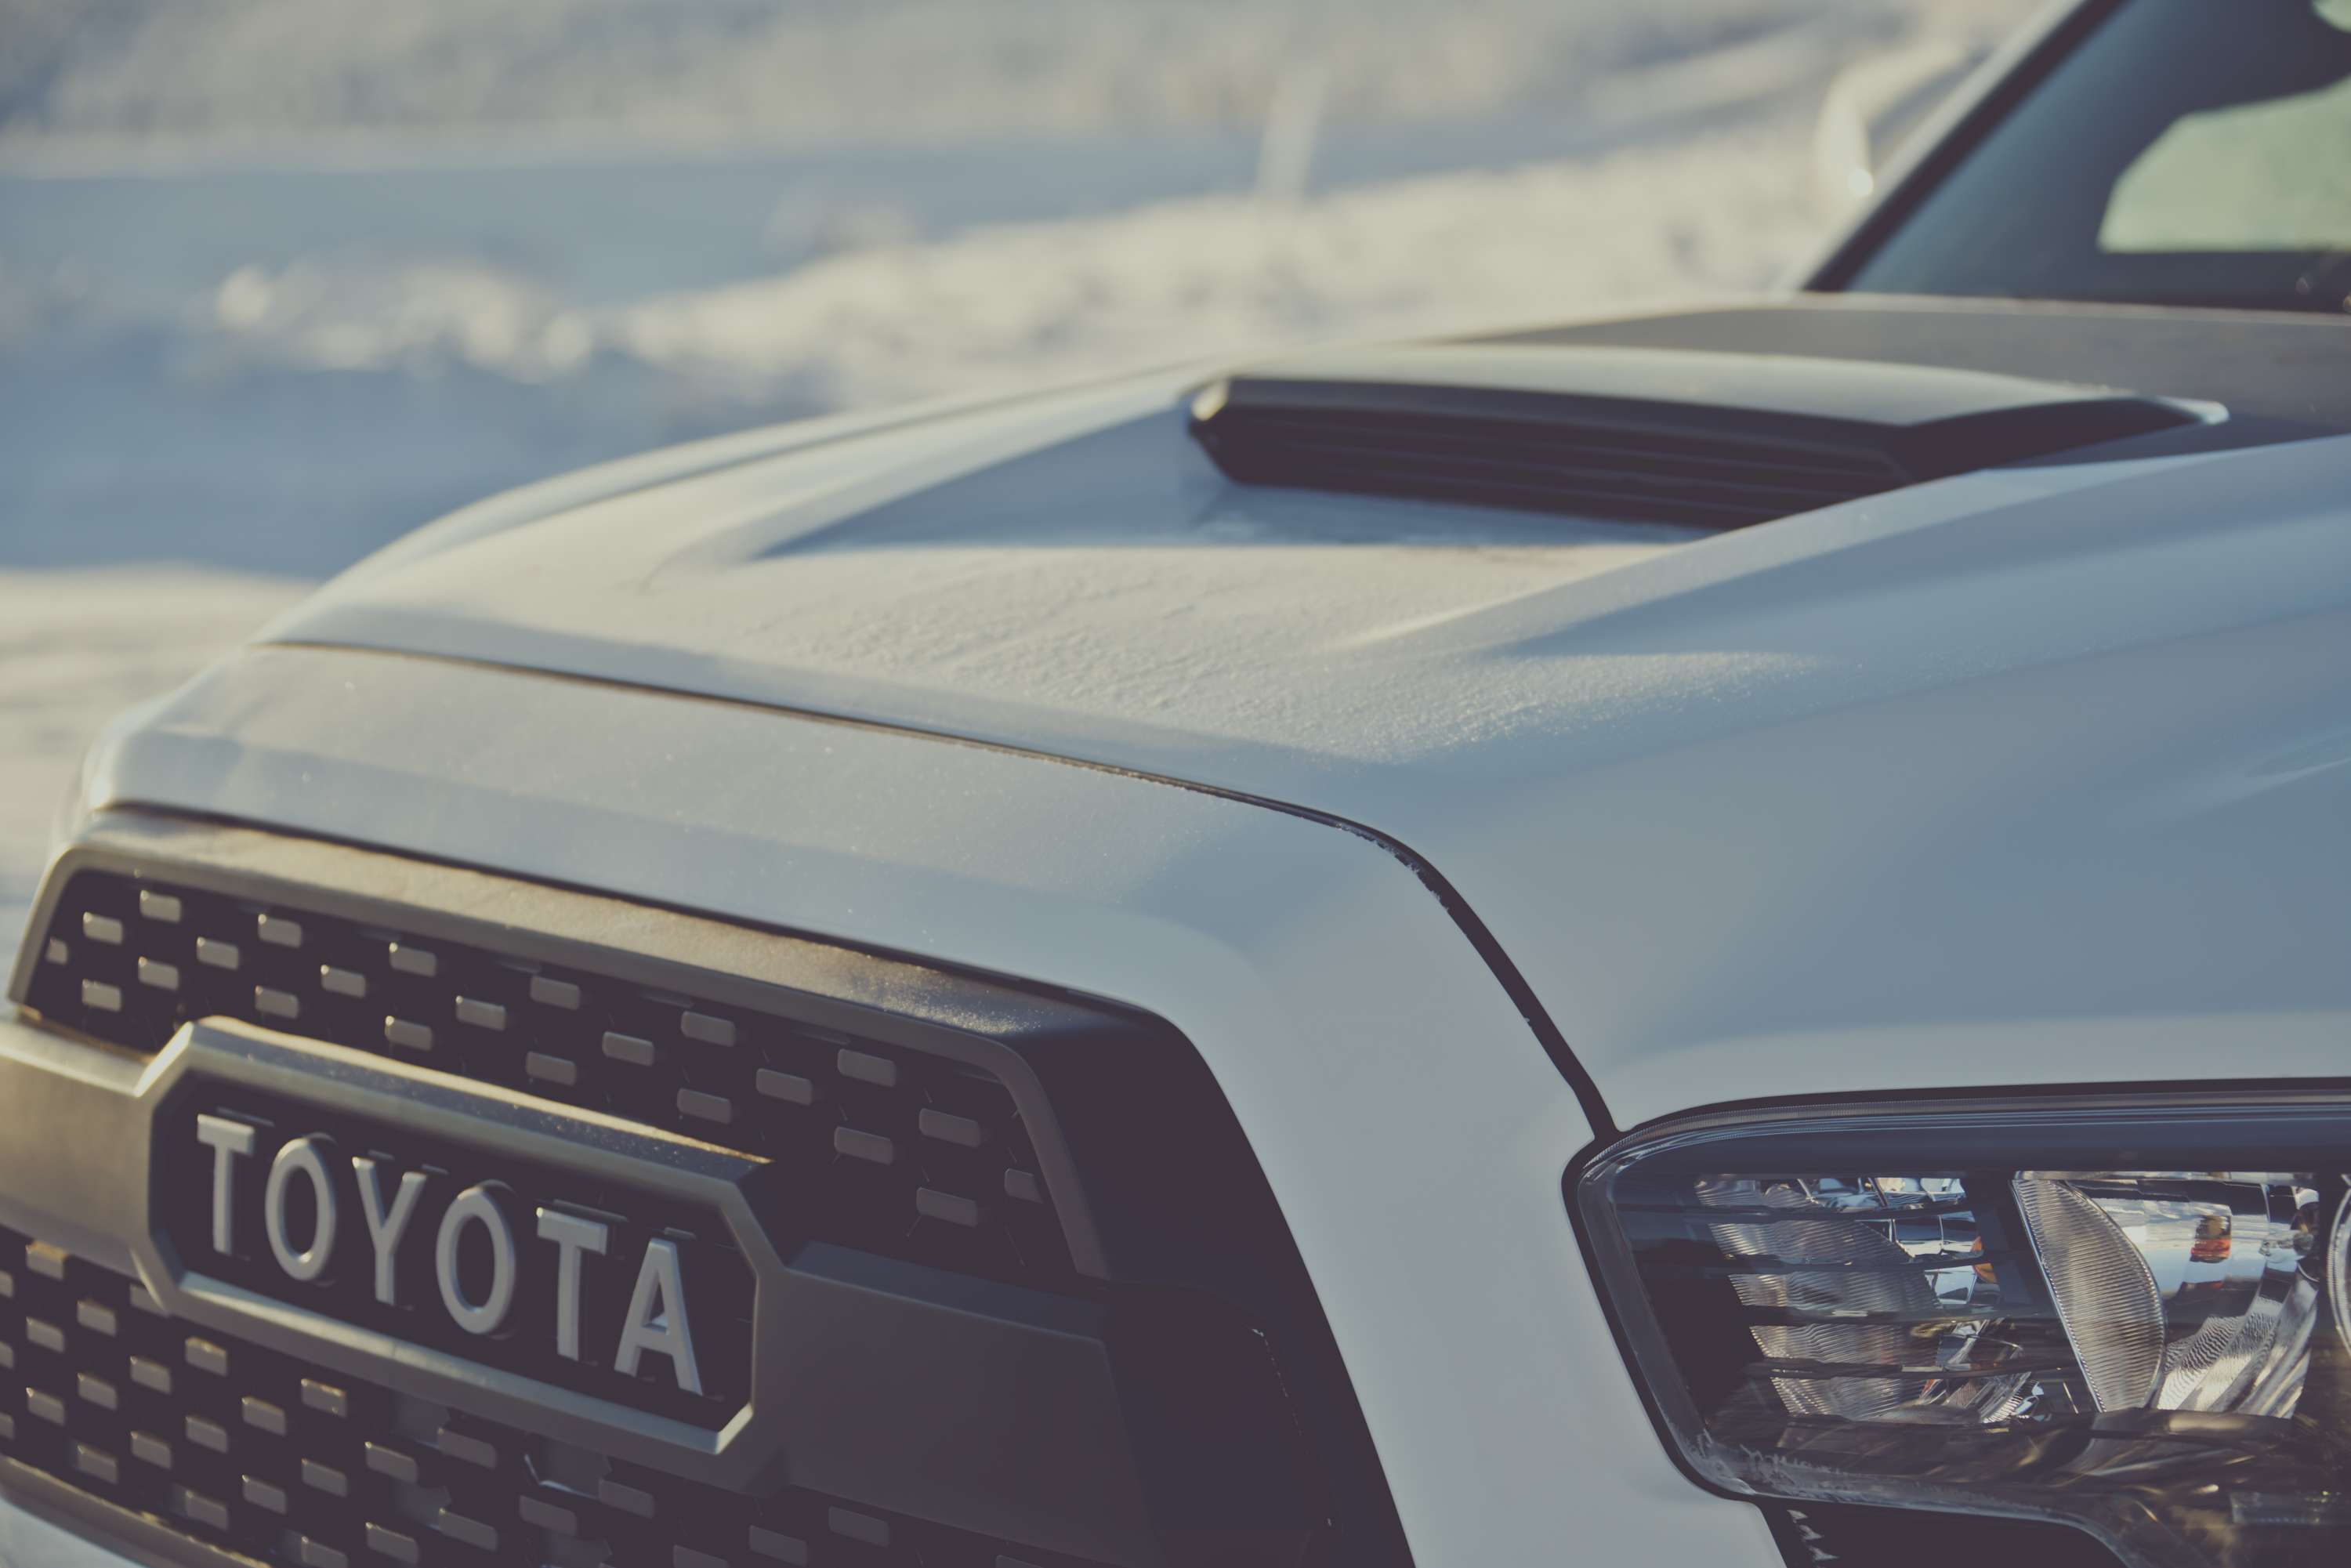 cars trd of off toyota tacoma t road series images hd wallpaper pro